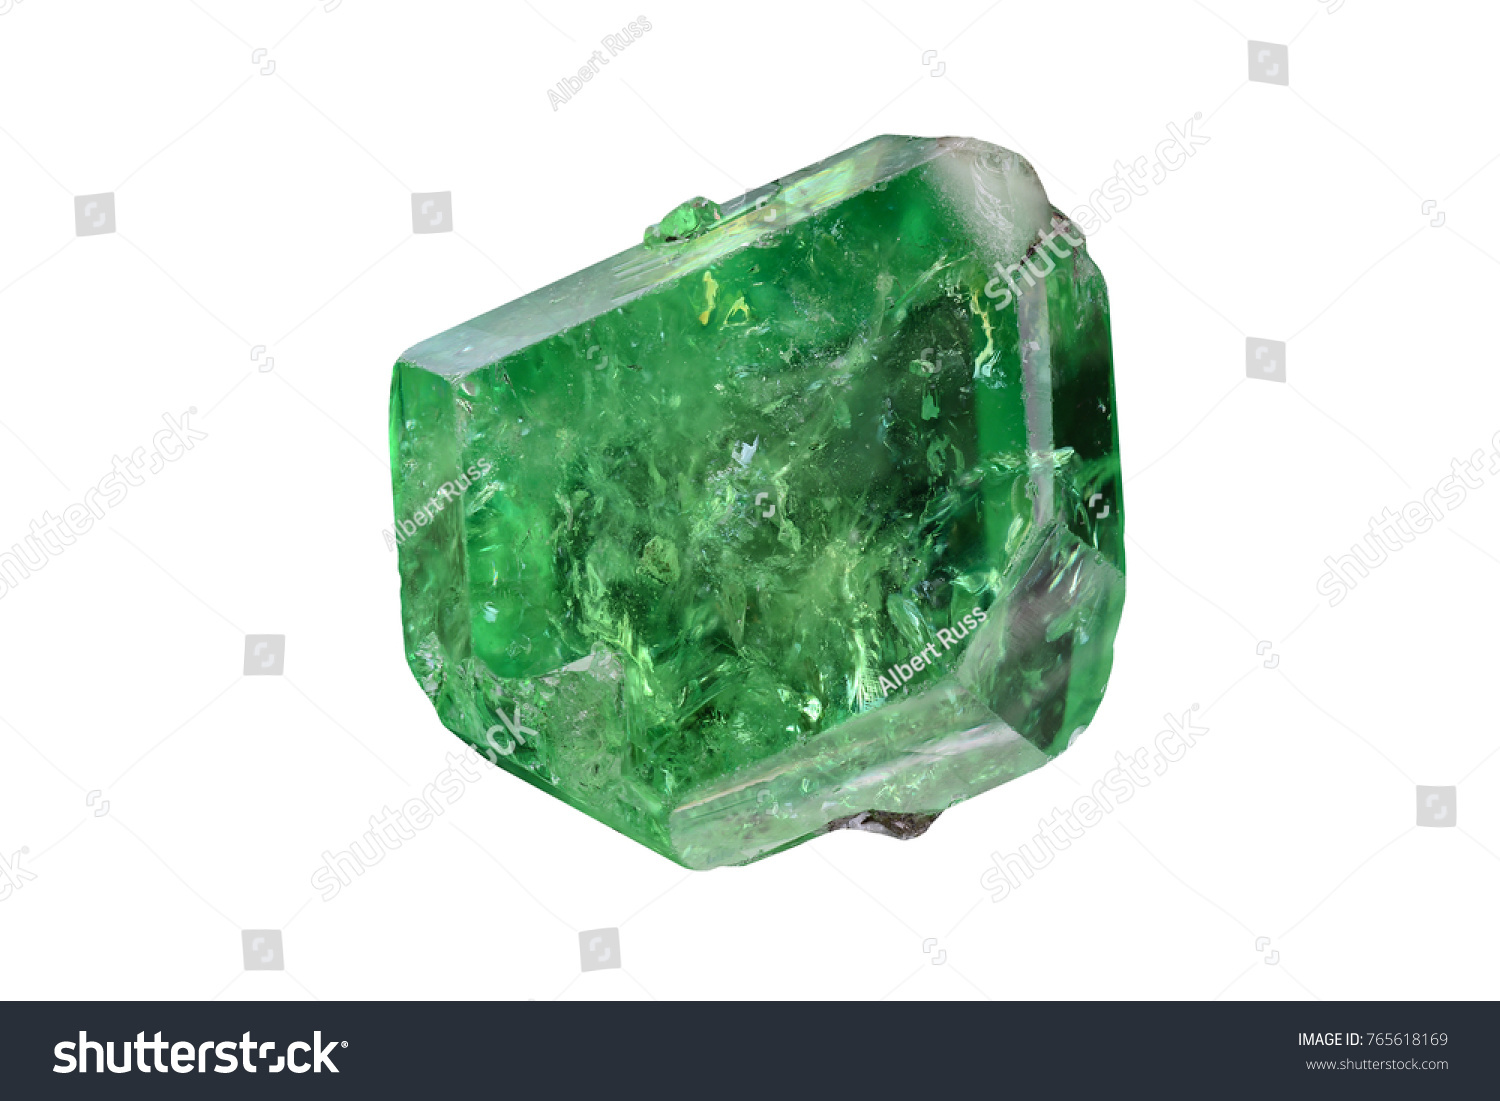 at tsavorite com tsavoritewebpage gemstones and carvings thebrazilianconnection gemstone garnet